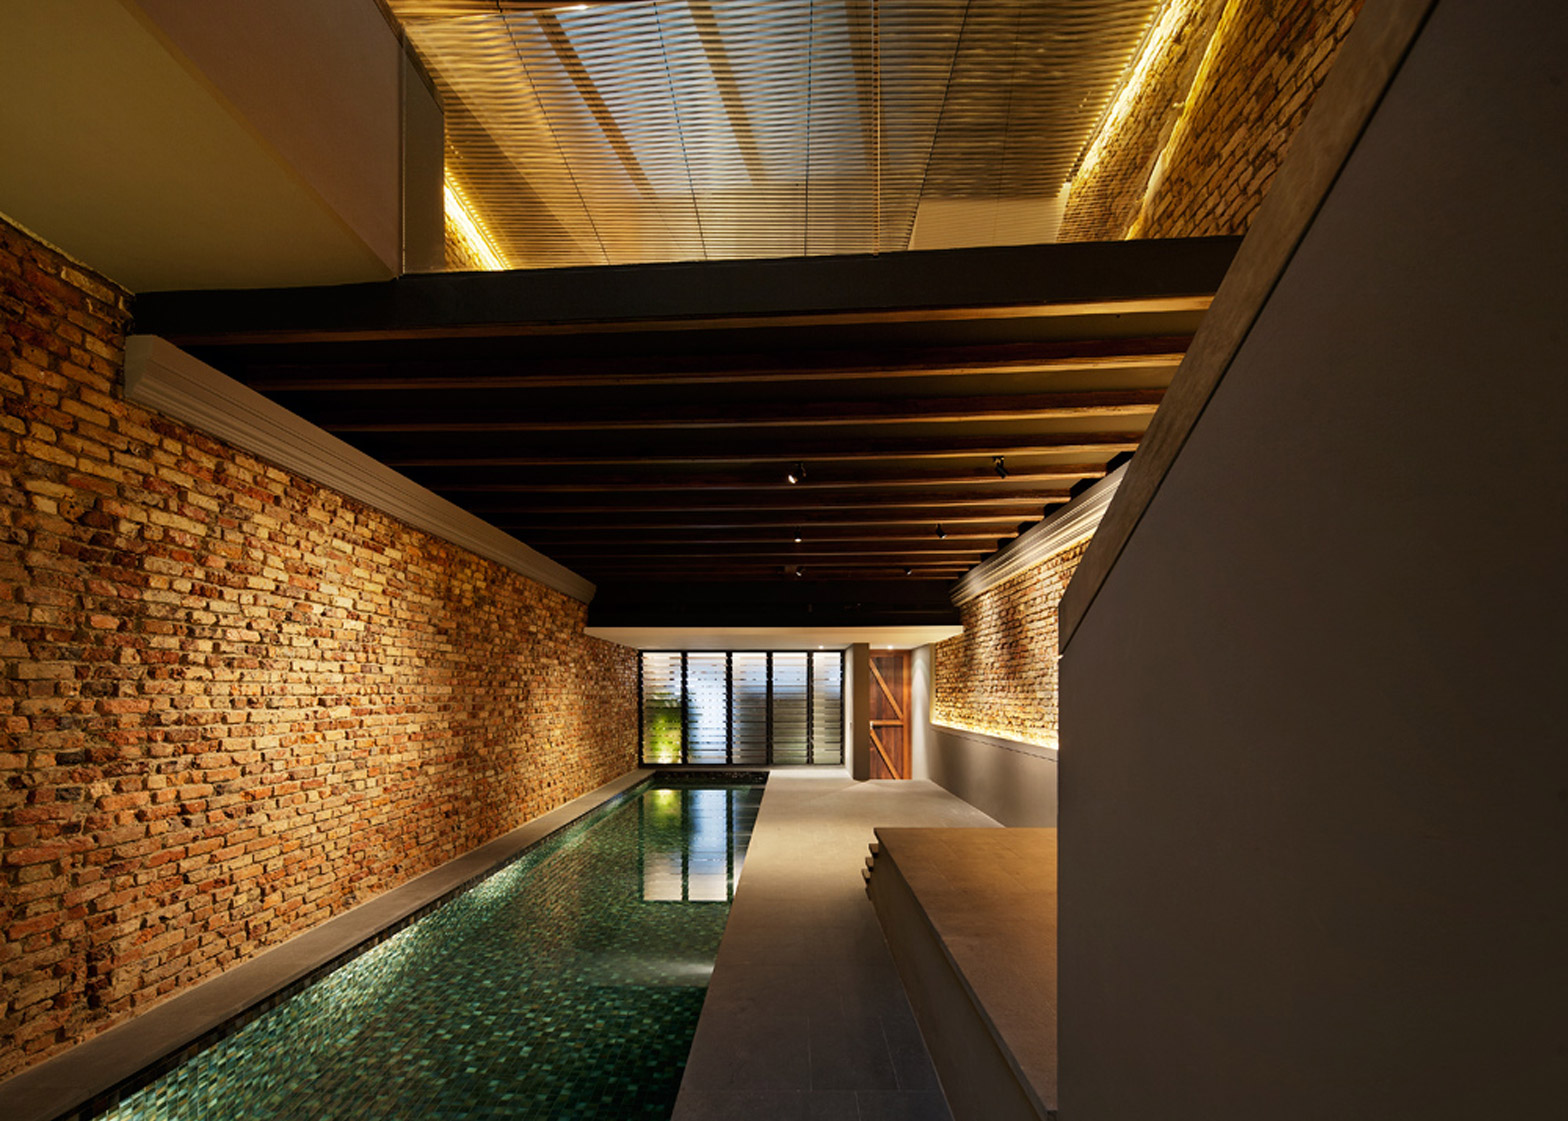 The Pool Shophouse By FARM and KD Architects on the top 10 brick interiors on Dezeen's Pinterest boards